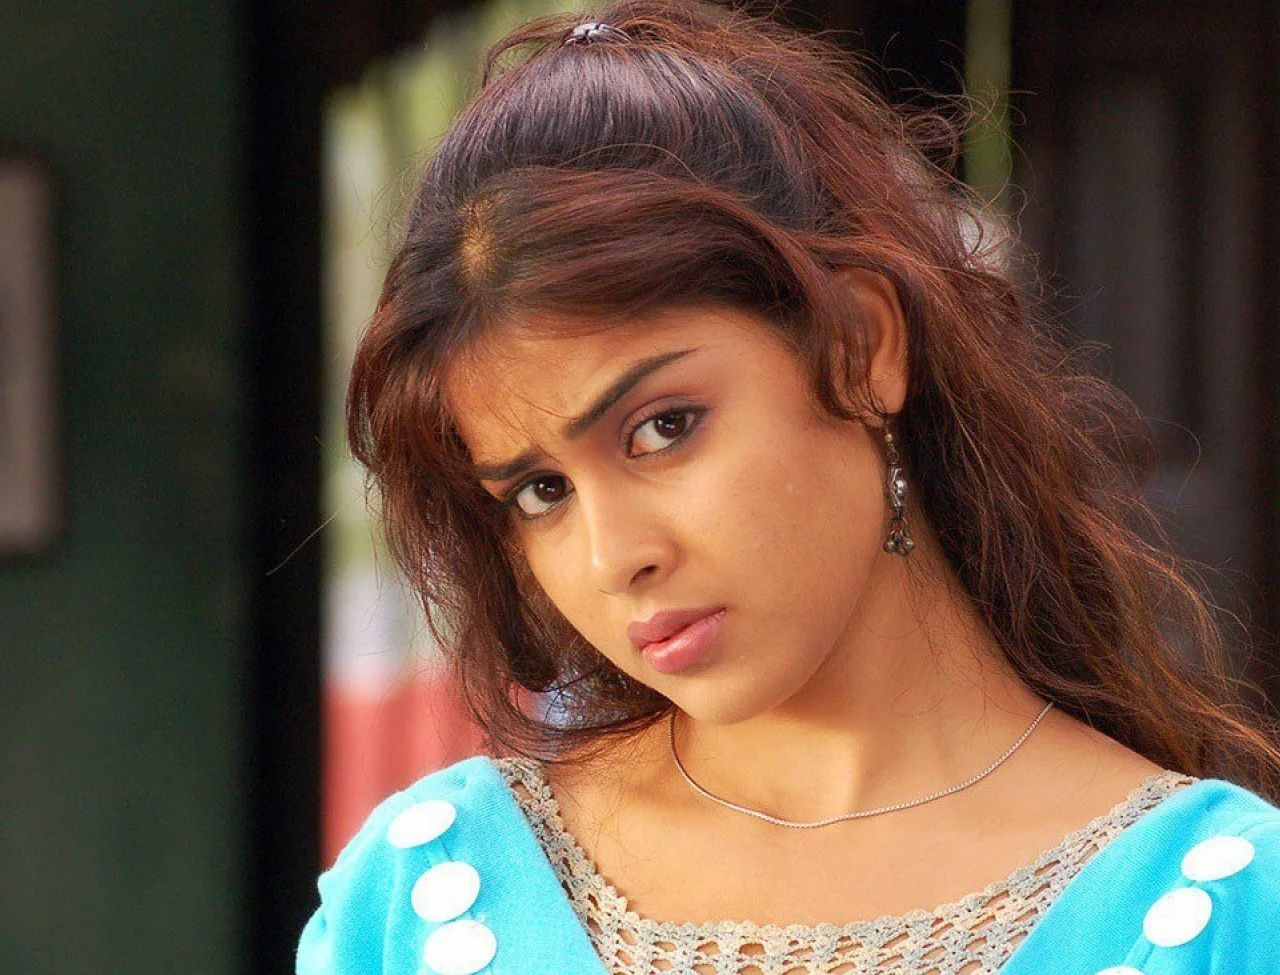 genelia d'souza hd wallpaper gallery | south indian photo gallery